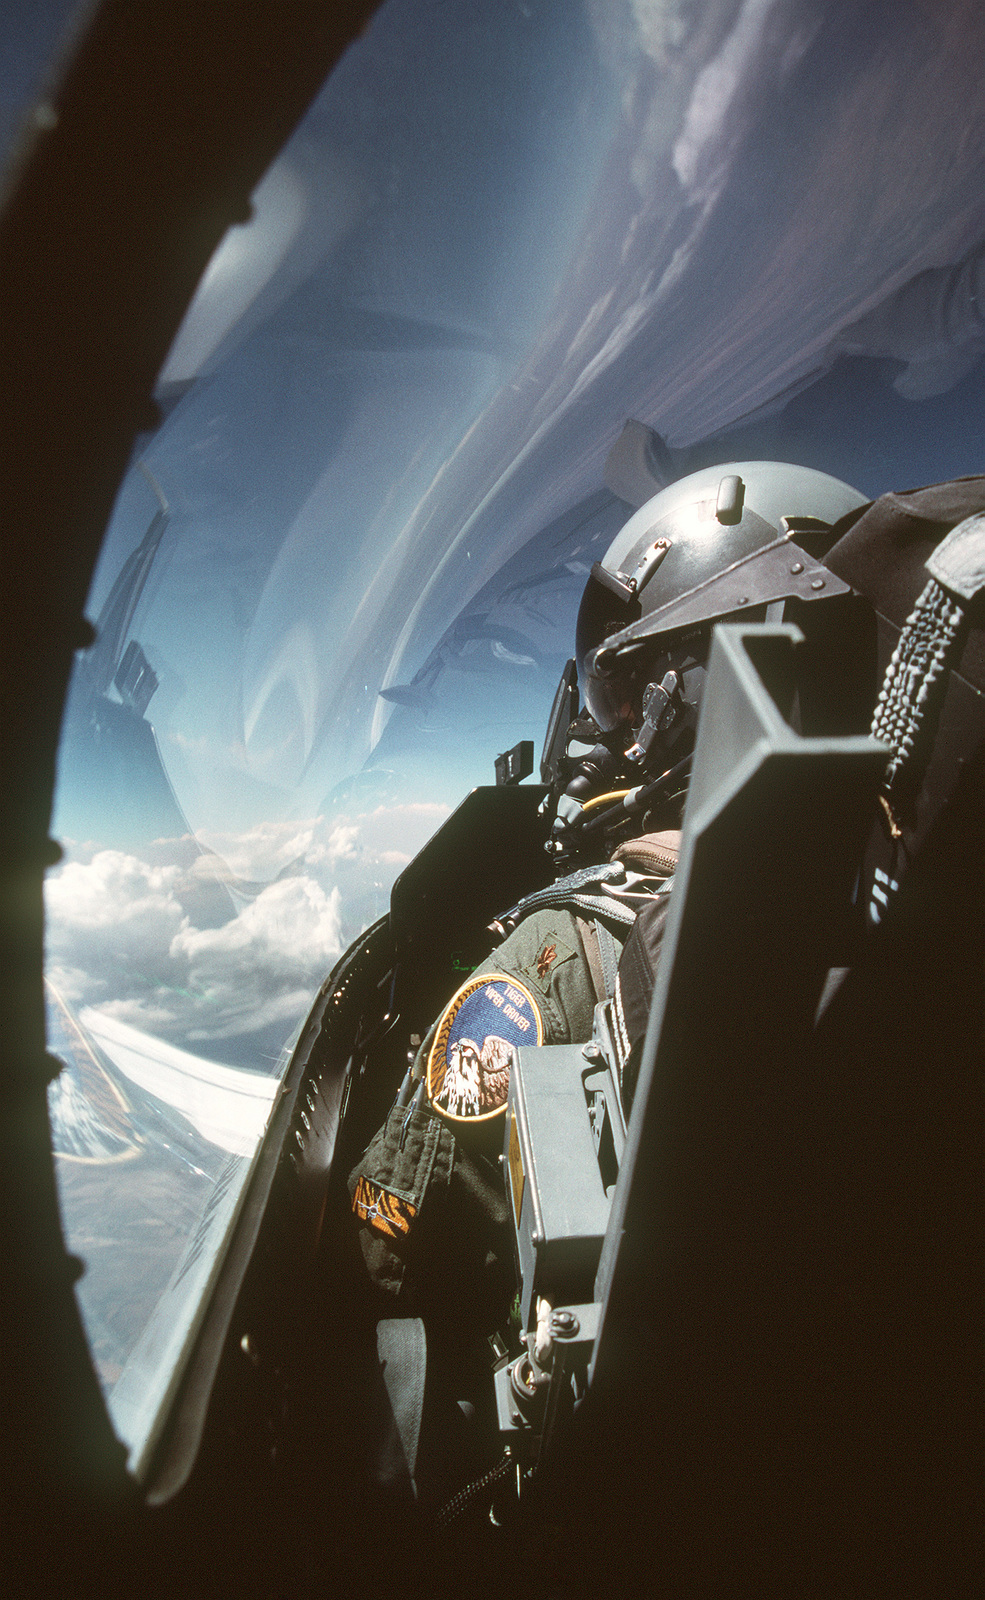 A US Air Force Major (MAJ) Douglas Schaare, 79th Fighter Squadron, 20th fighter Wing pilots an F-16CJ Fighting Falcon aircraft over the Utah Test and Training Range during the Tiger Meet of the Americas air combat training mission. The Inaugural Tiger Meet of the Americas brought together flying units from throughout North America that have a Tiger or large cat as their unit symbol. The Tiger Meet of the Americas closely resembles the North Atlantic Treaty Organization (NATO)/Europe Tiger Meet in its goal of fostering camaraderie, teamwork and tactics familiarization